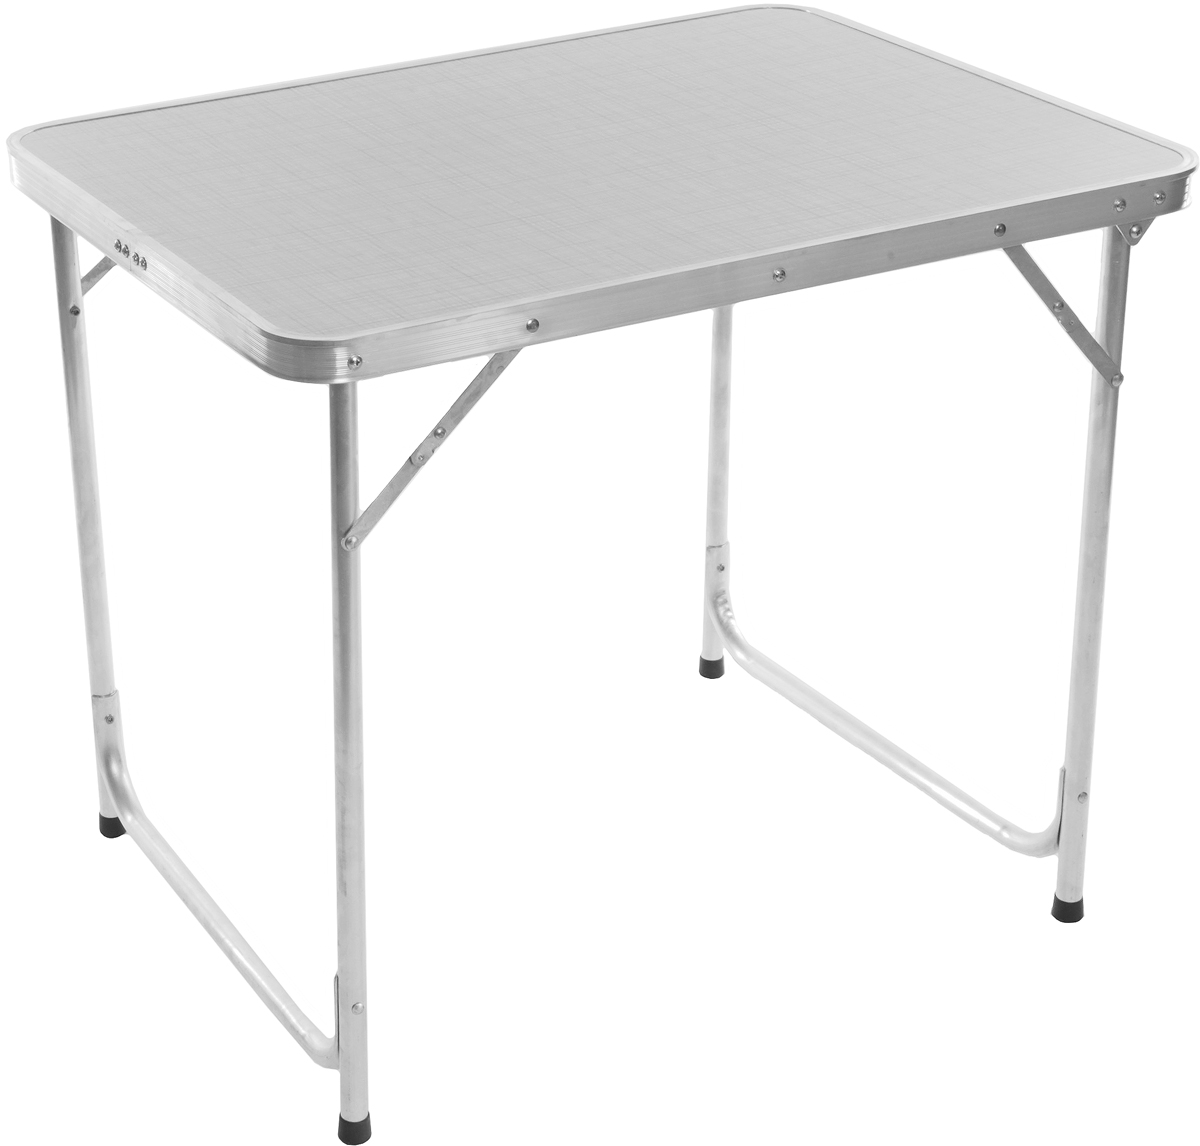 Стол складной Woodland Camping Table, 80 см х 60 см х 67 см стол woodland picnic table luxe 80x60x68 t 202